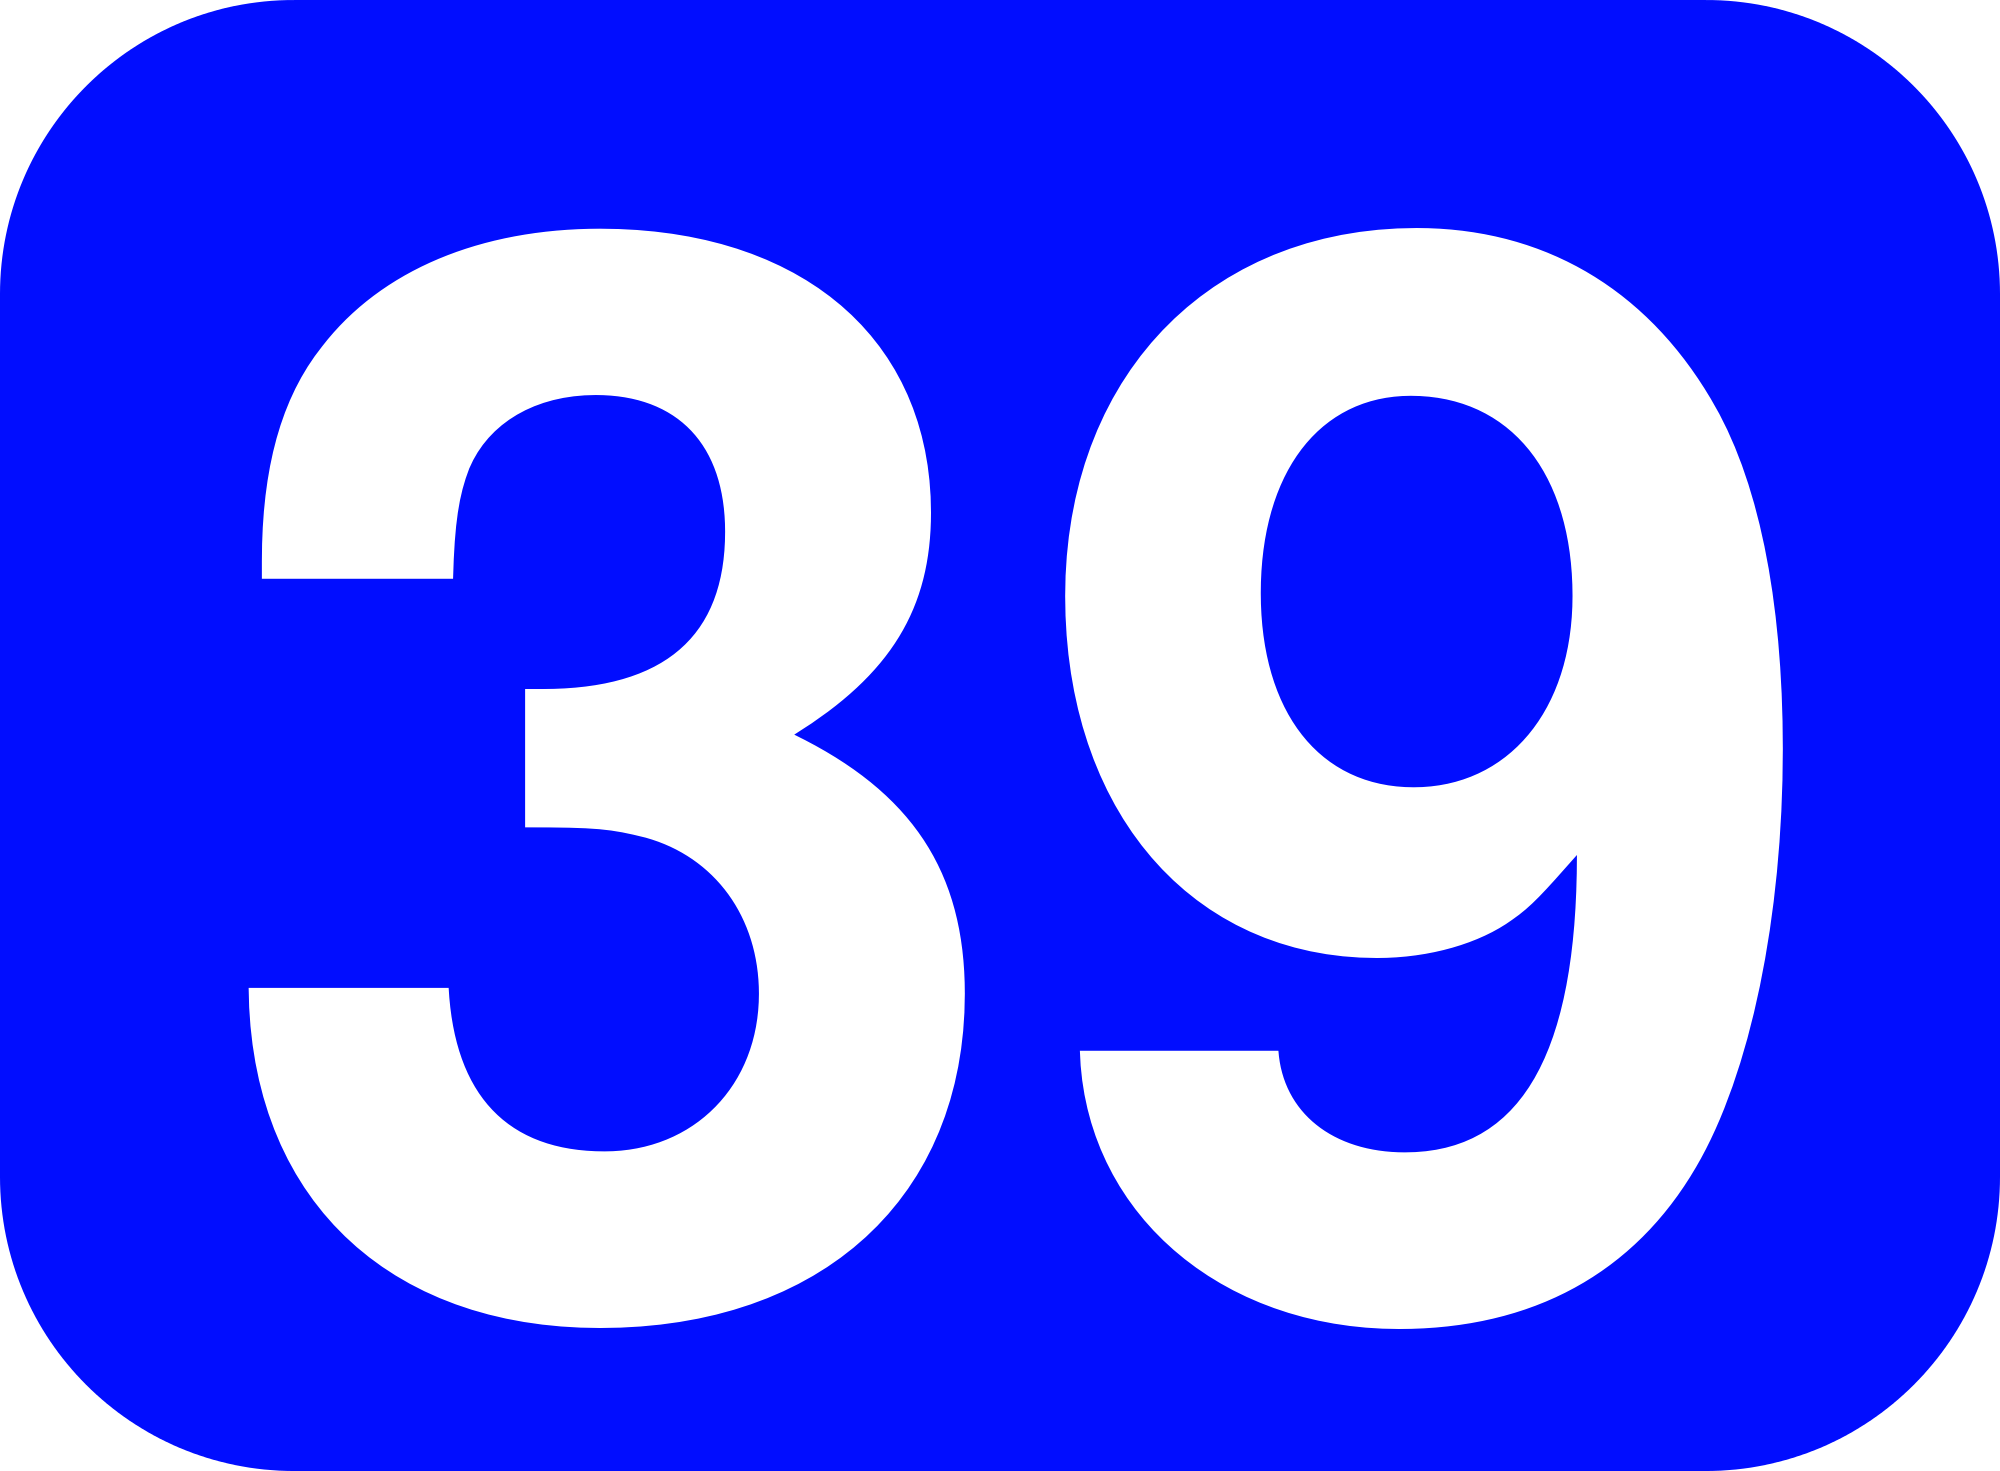 File:39 white, blue rounded rectangle.png